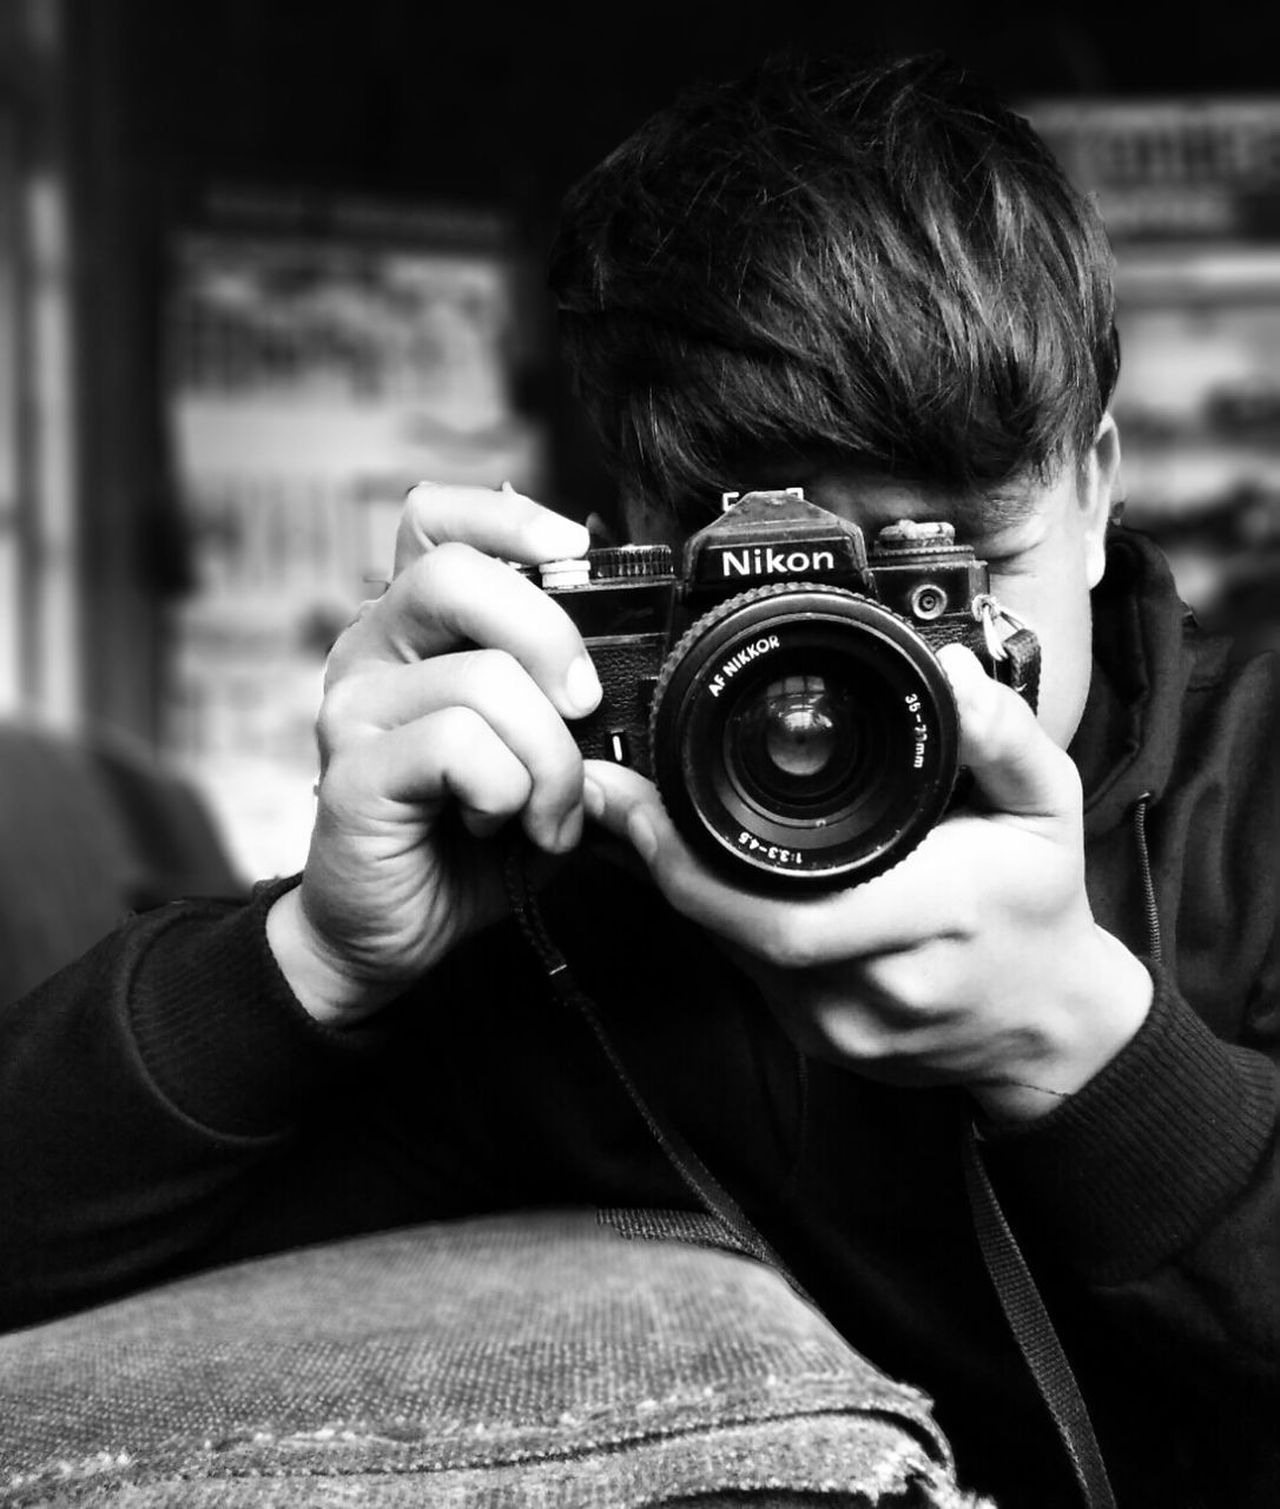 Photography Themes Camera - Photographic Equipment Photographing Retro Styled Holding One Person Adults Only People Photographer Indoors  Close-up Digital Single-lens Reflex Camera Day Old-fashioned Adult Young Adult EyeEmNewHere